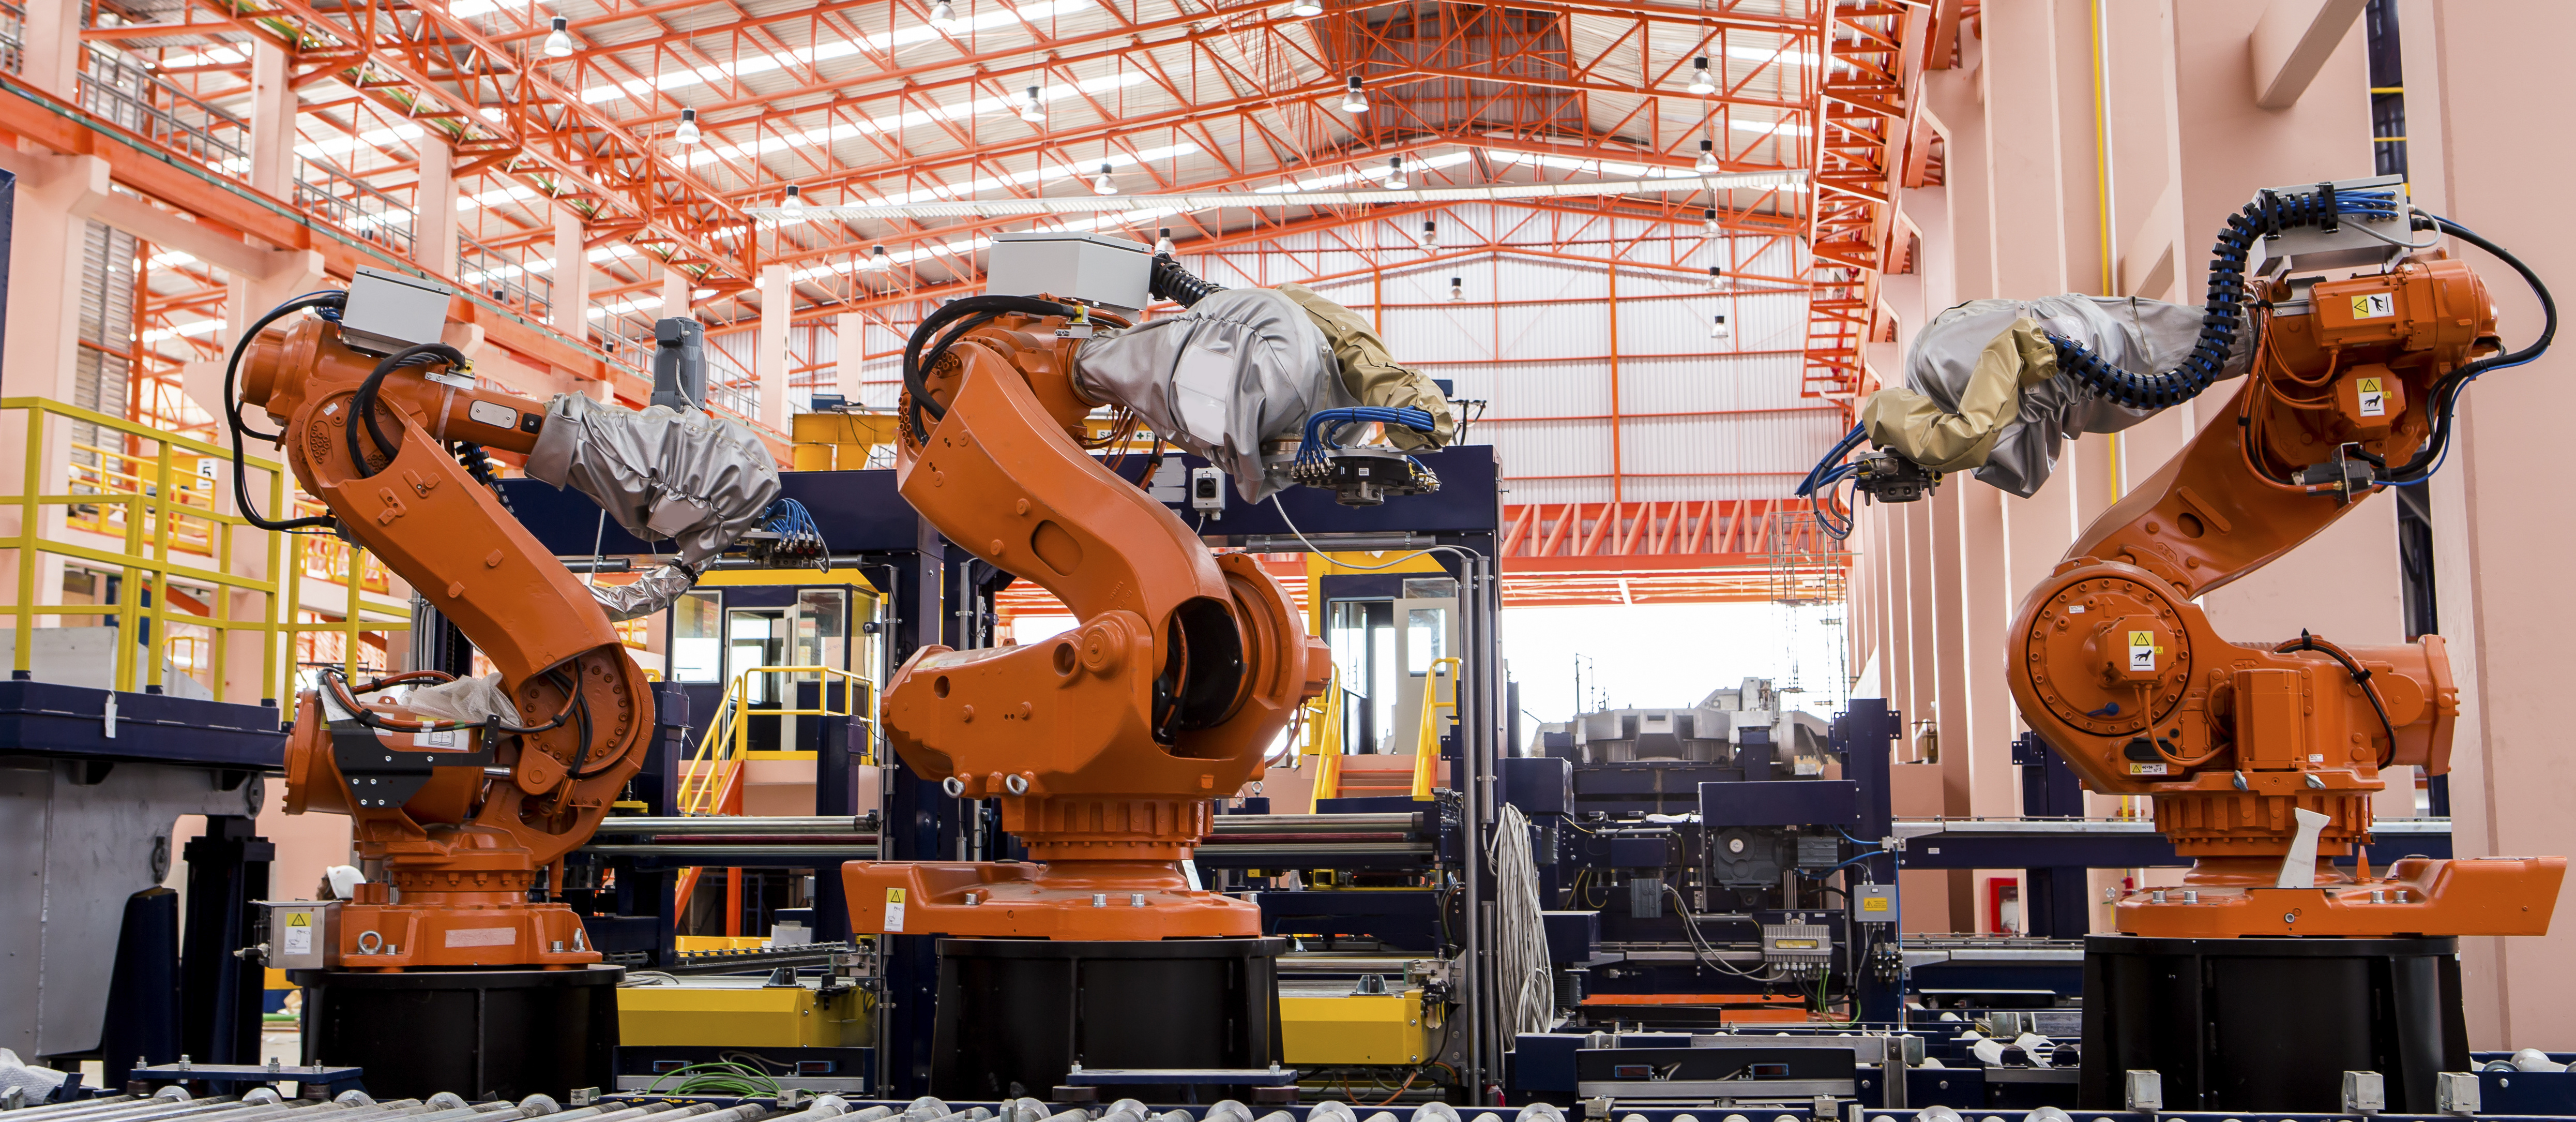 5 Easy Ways to Avoid Robot Collisions (& a last resort